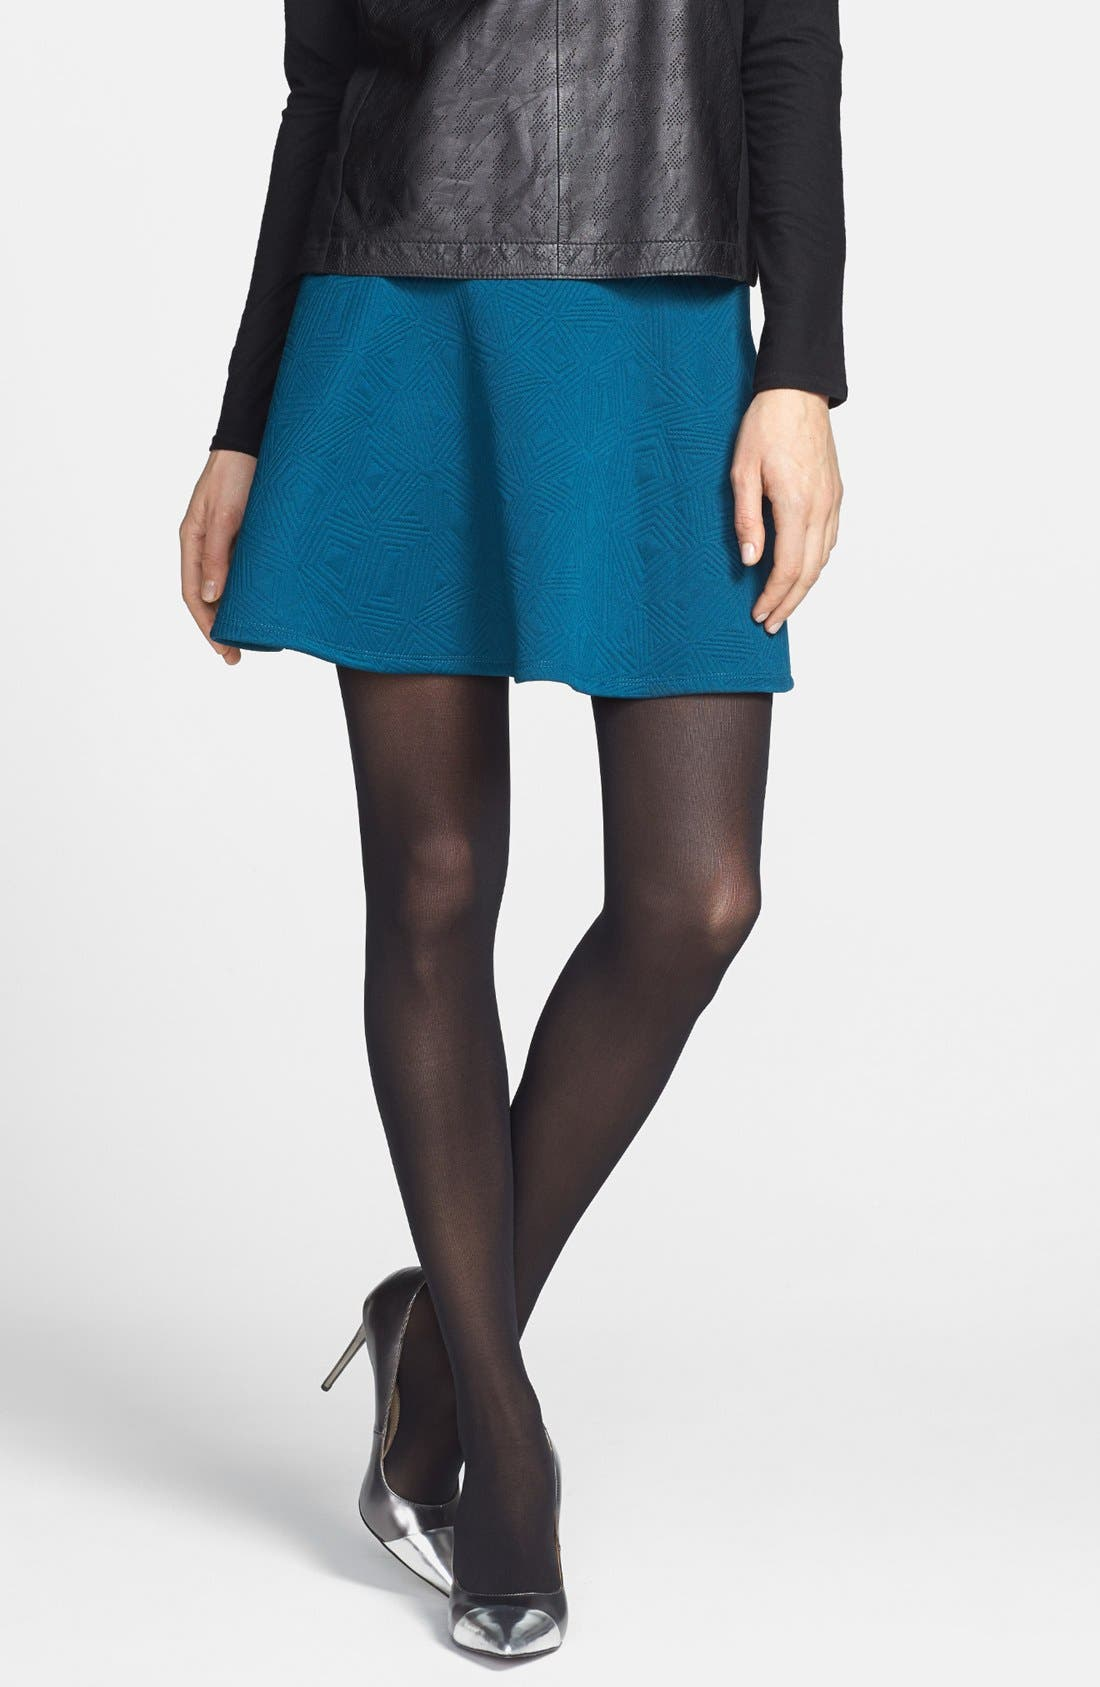 Main Image - DKNY '412' Control Top Opaque Tights